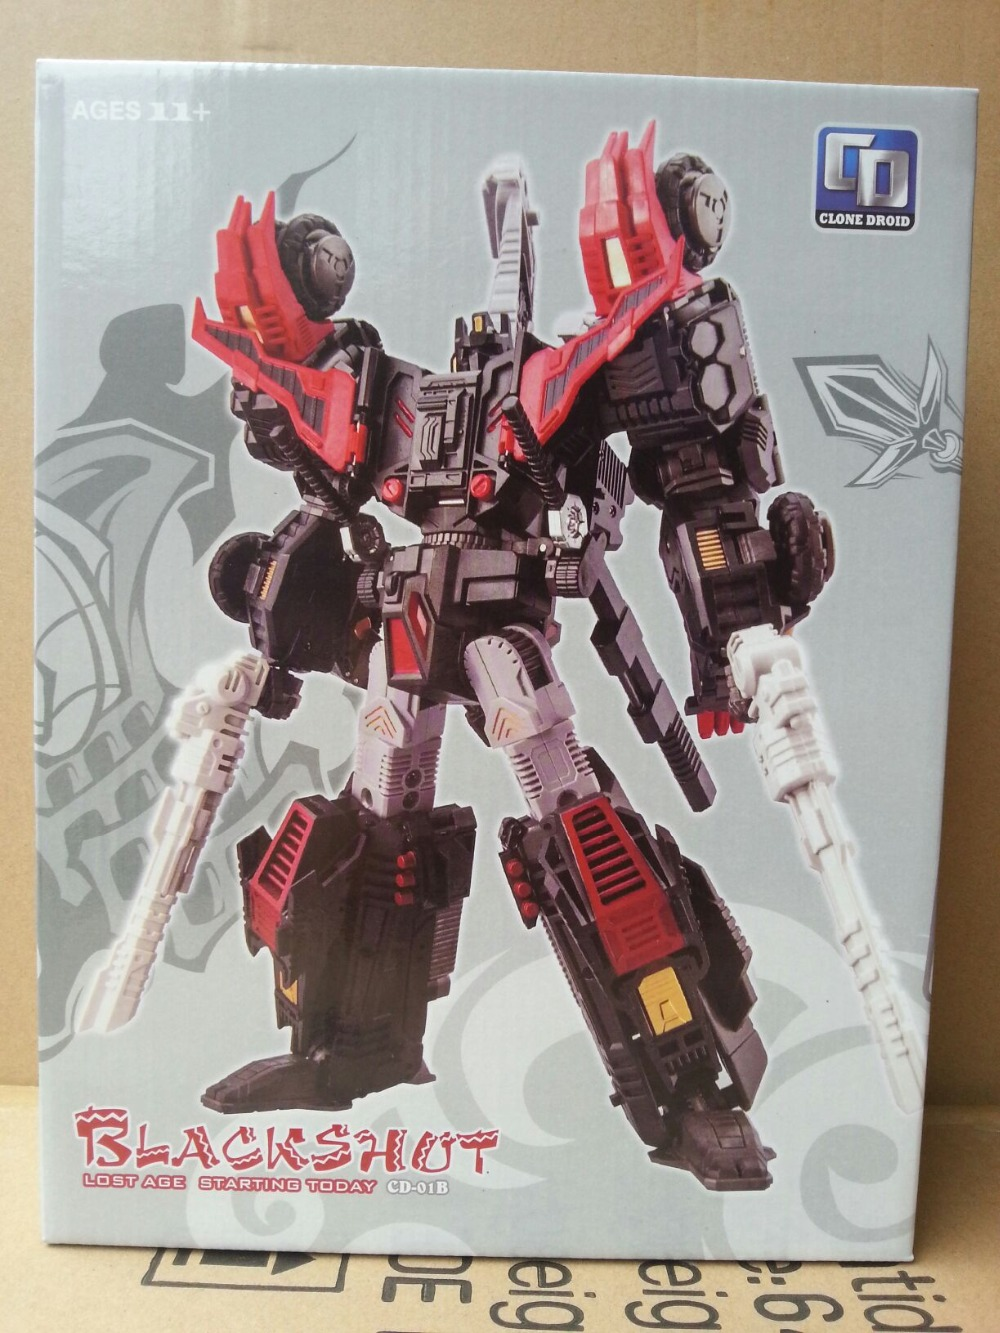 TF Clone Droid Black Sixshot Limited Version,In stock!(China (Mainland))